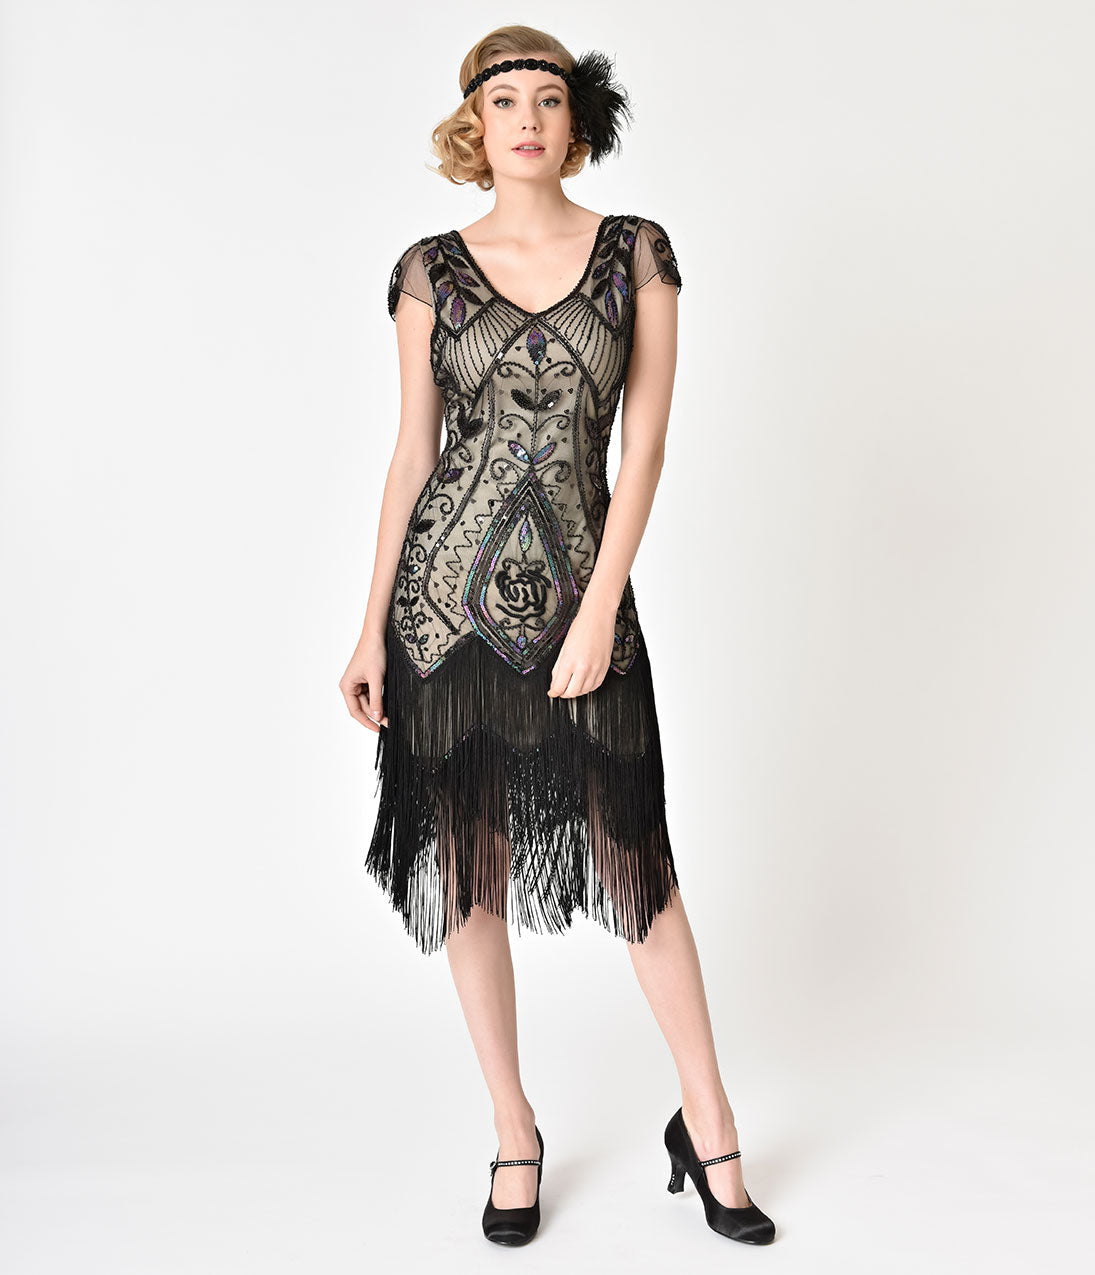 20s Dresses | 1920s Dresses for Sale Unique Vintage 1920S Black Rose  Champagne Noele Fringe Flapper Dress $98.00 AT vintagedancer.com